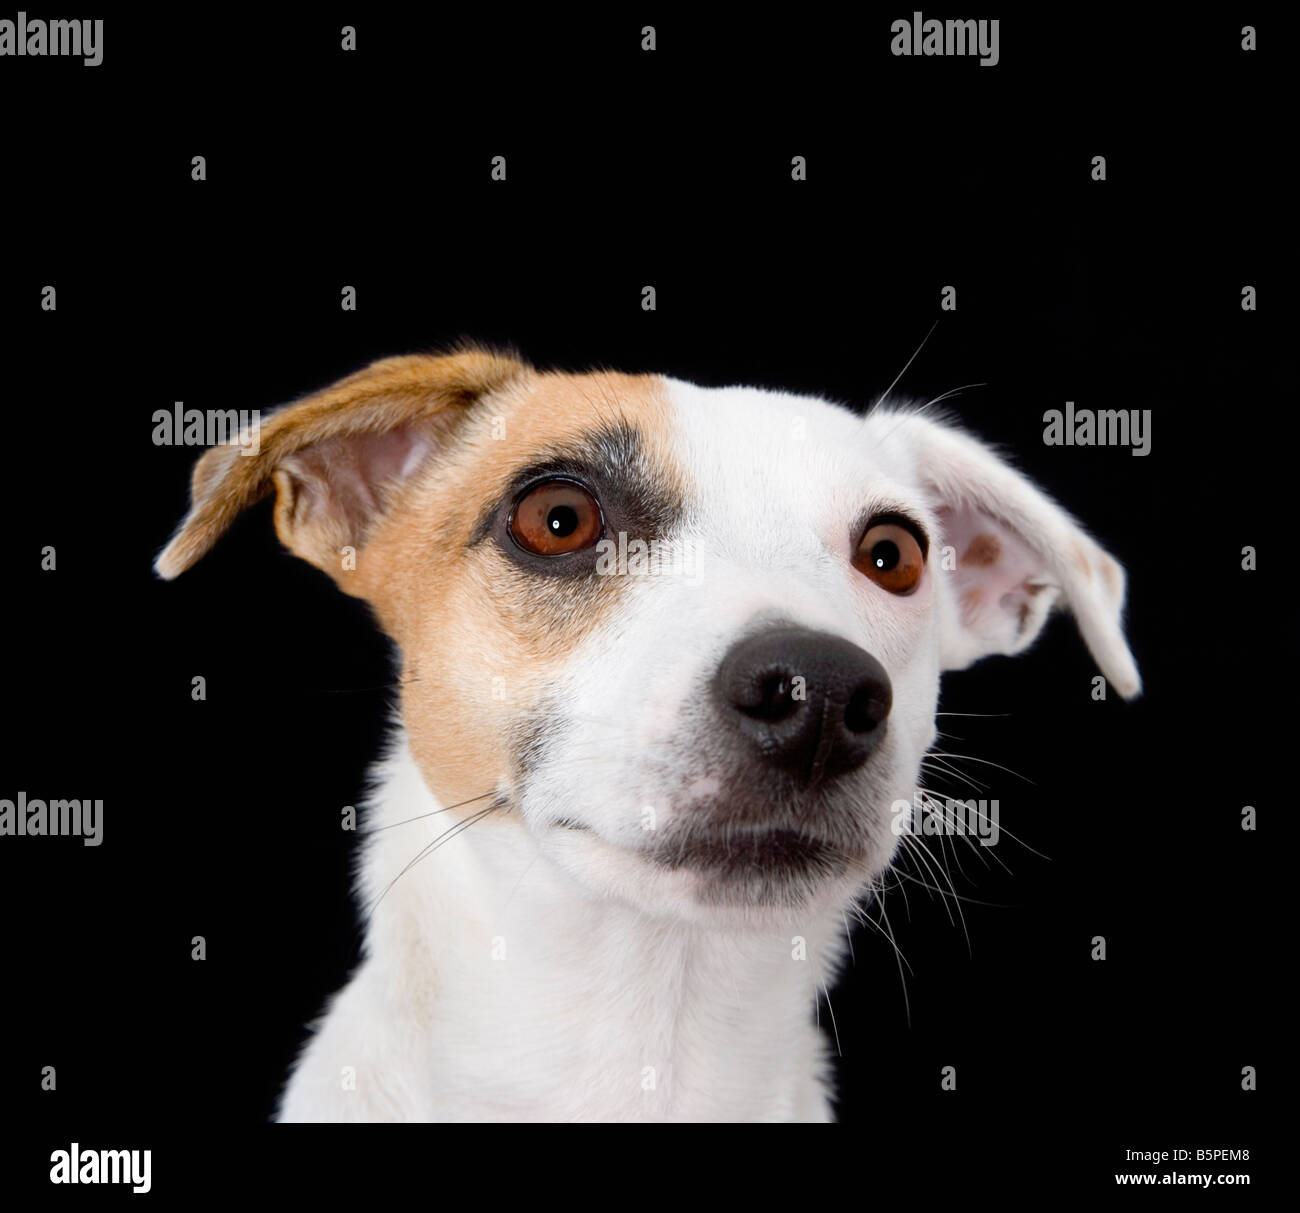 Jack Russell dog close up - Stock Image